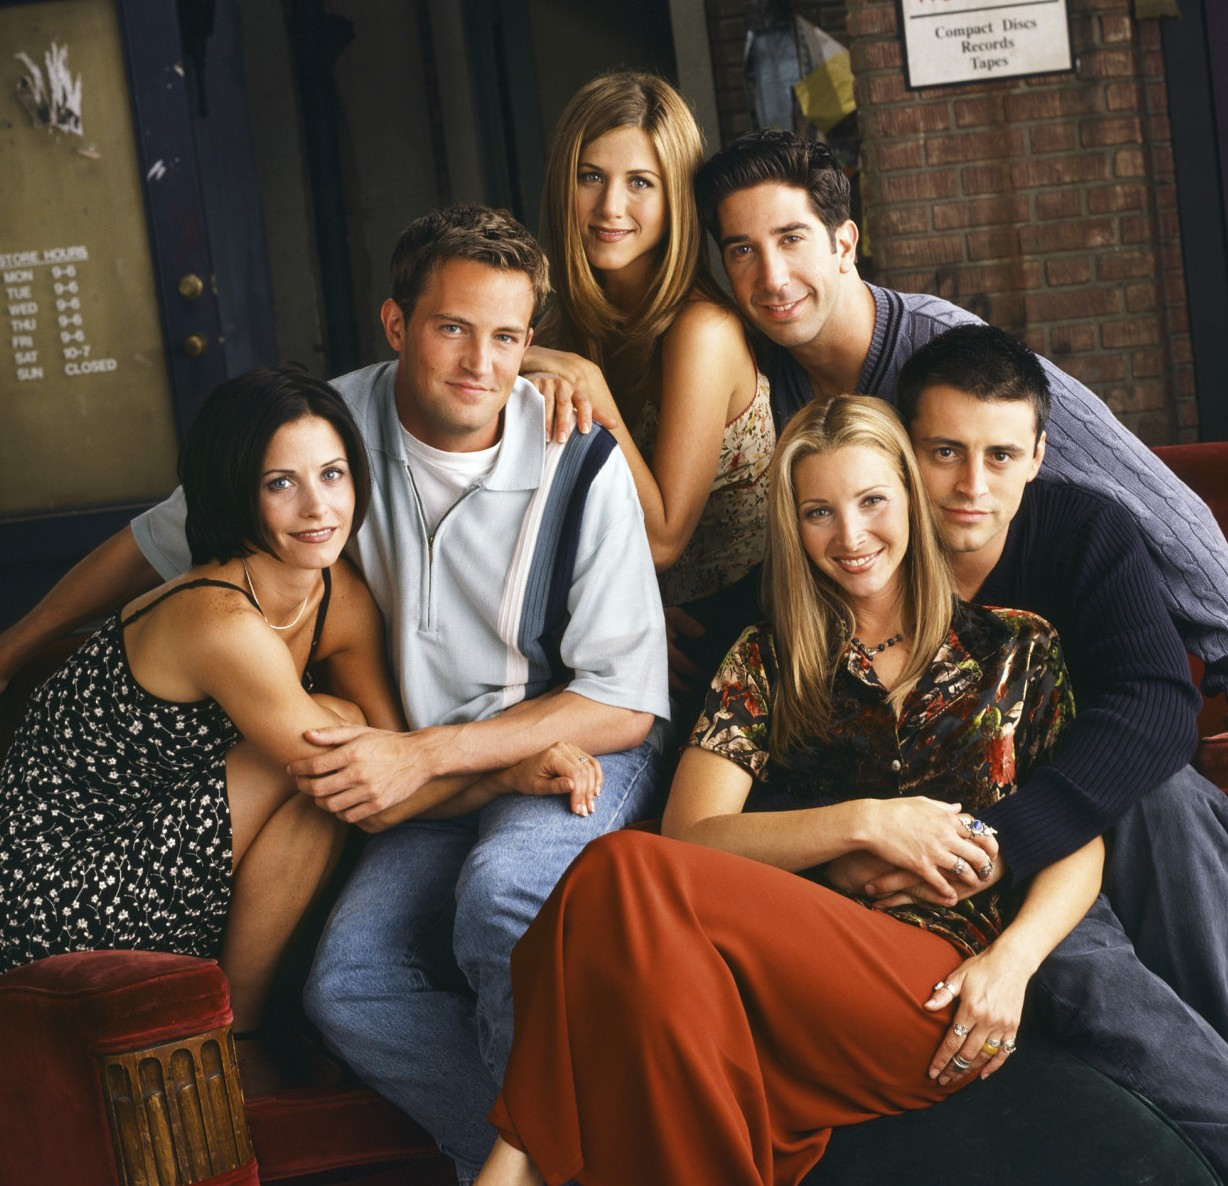 friends-cast-promo-2-e1371755026676